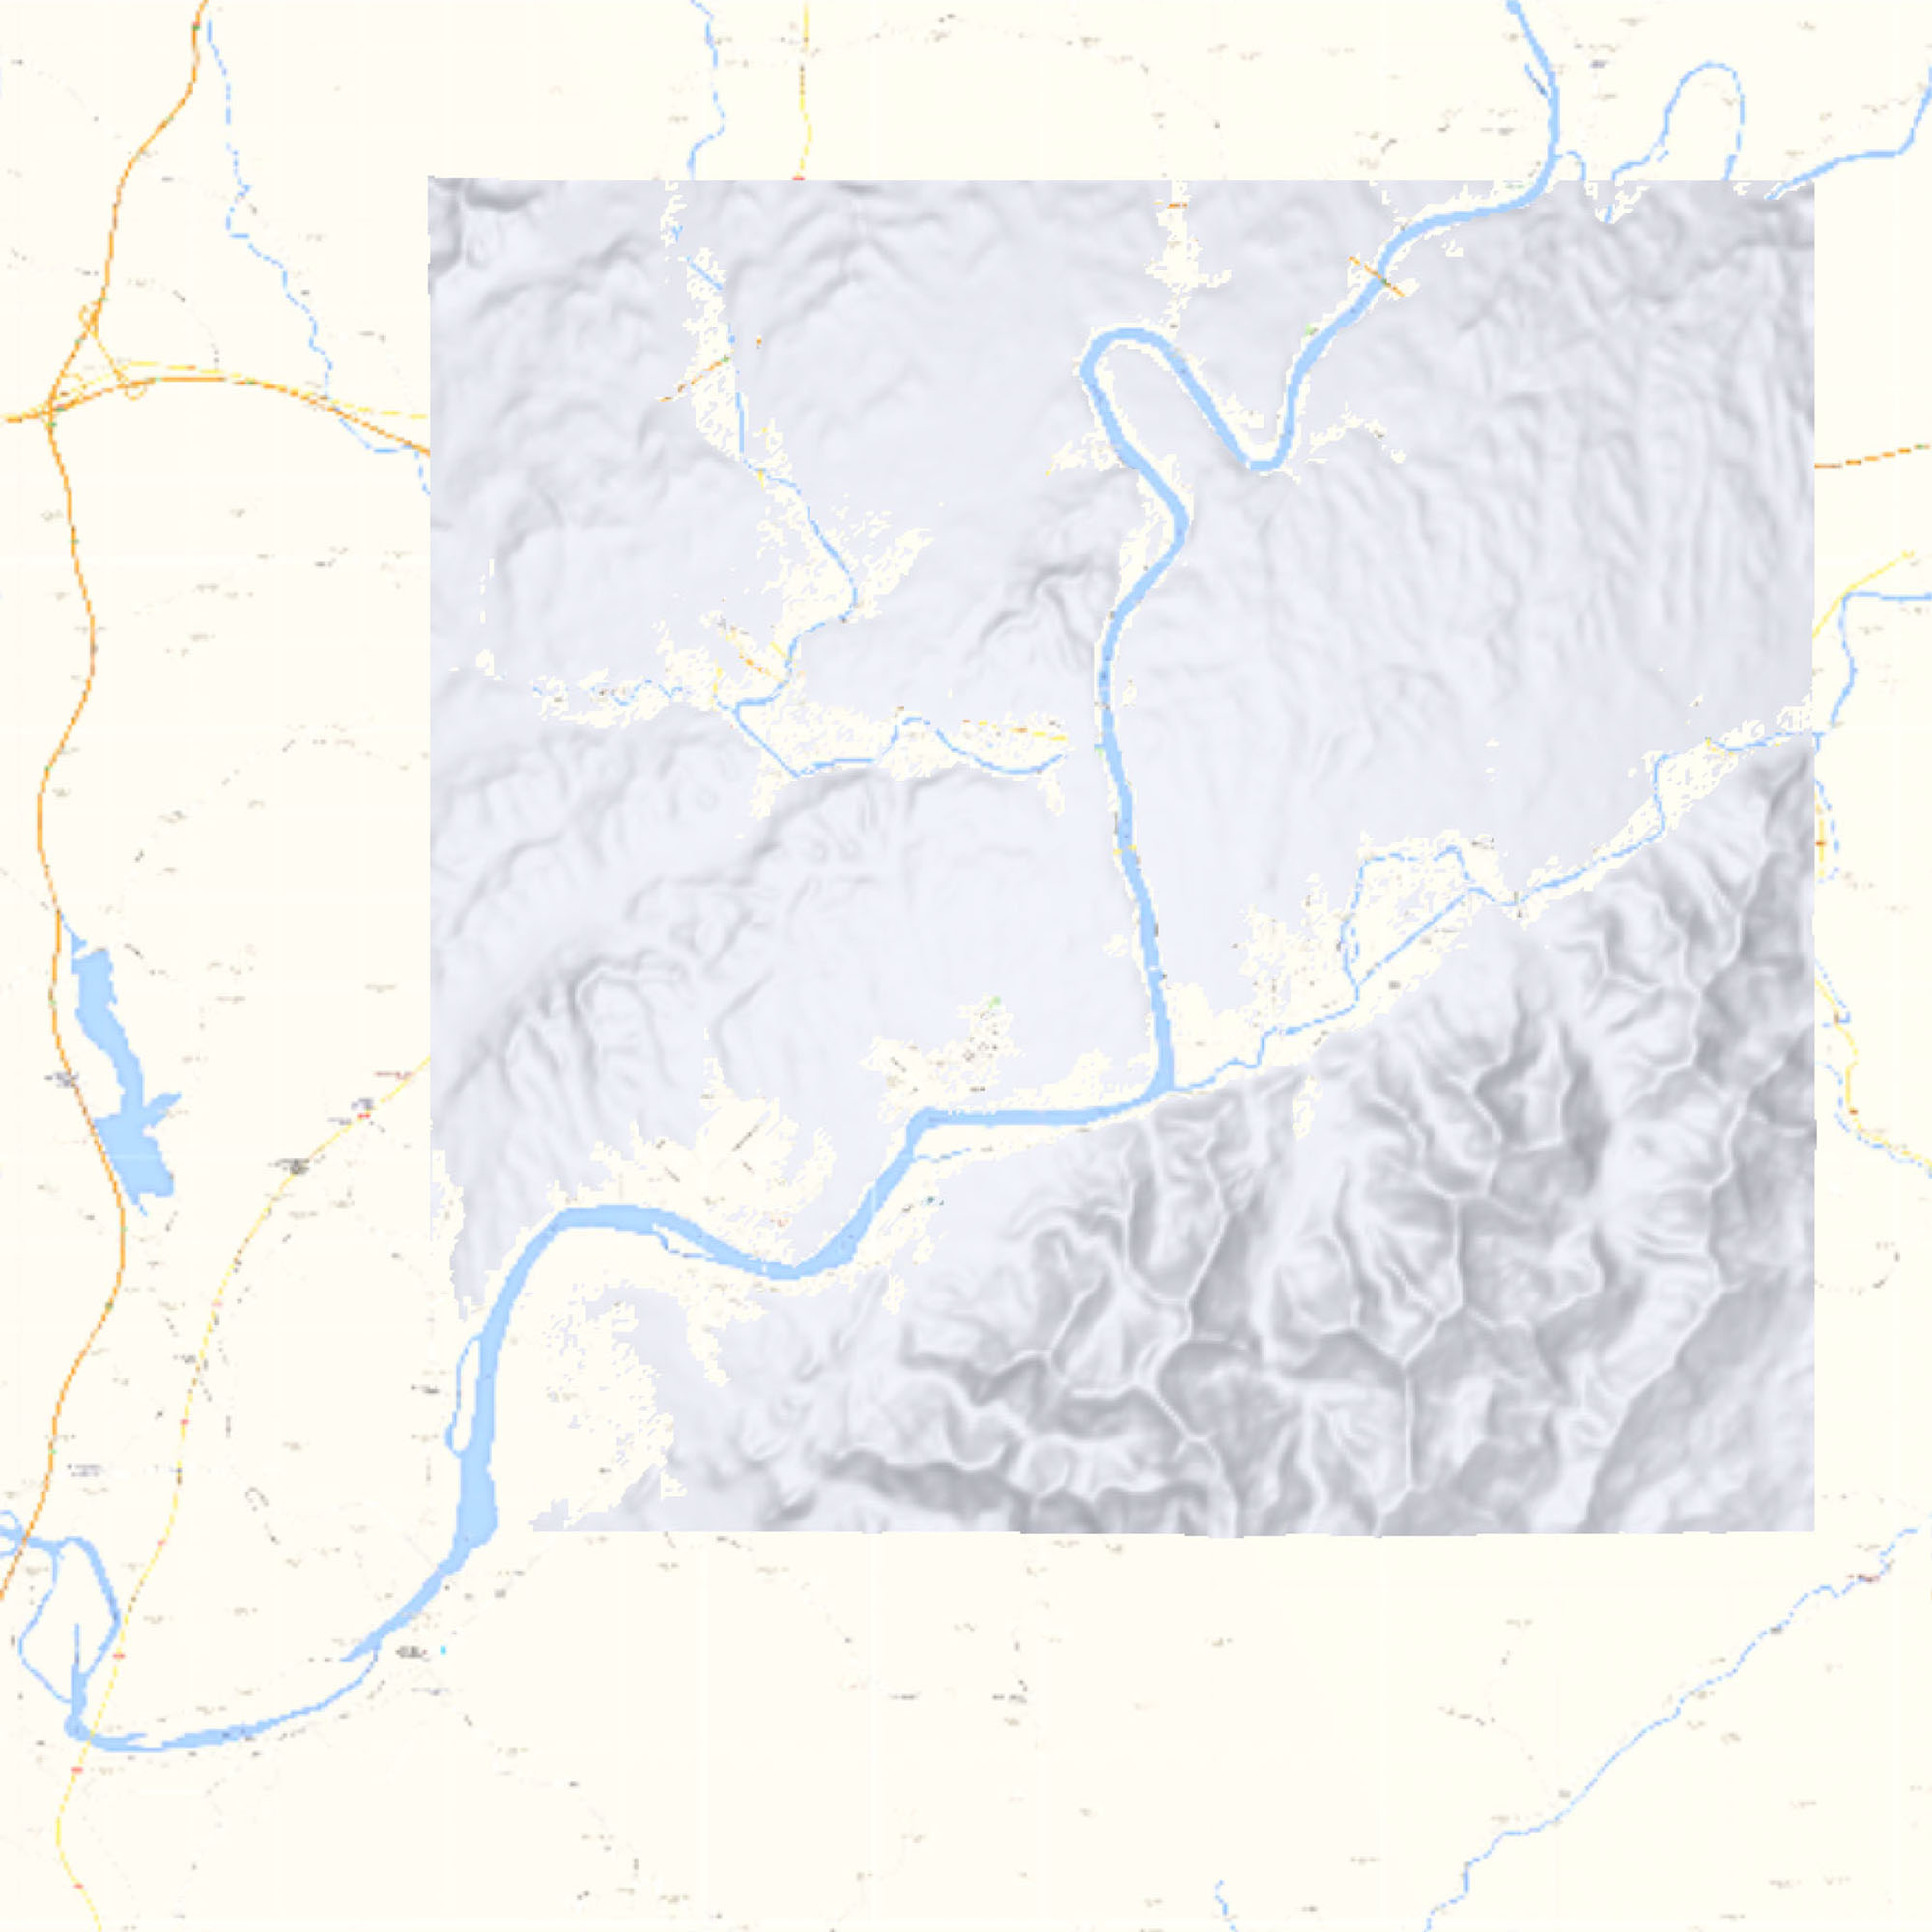 map over map.jpg